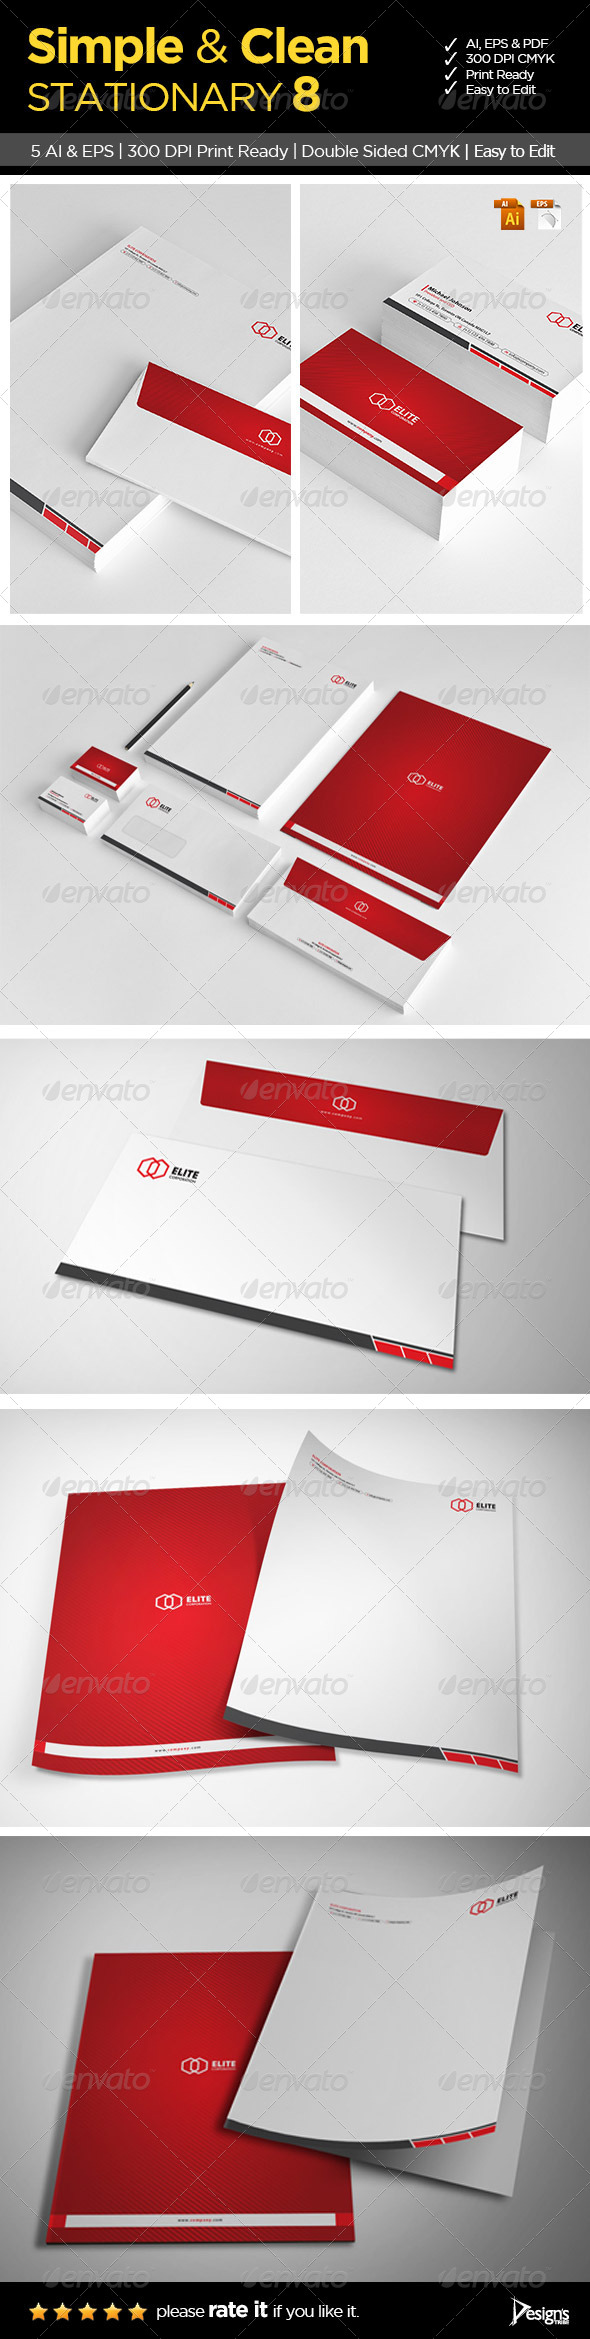 Simple and Clean Stationary 8 - Stationery Print Templates